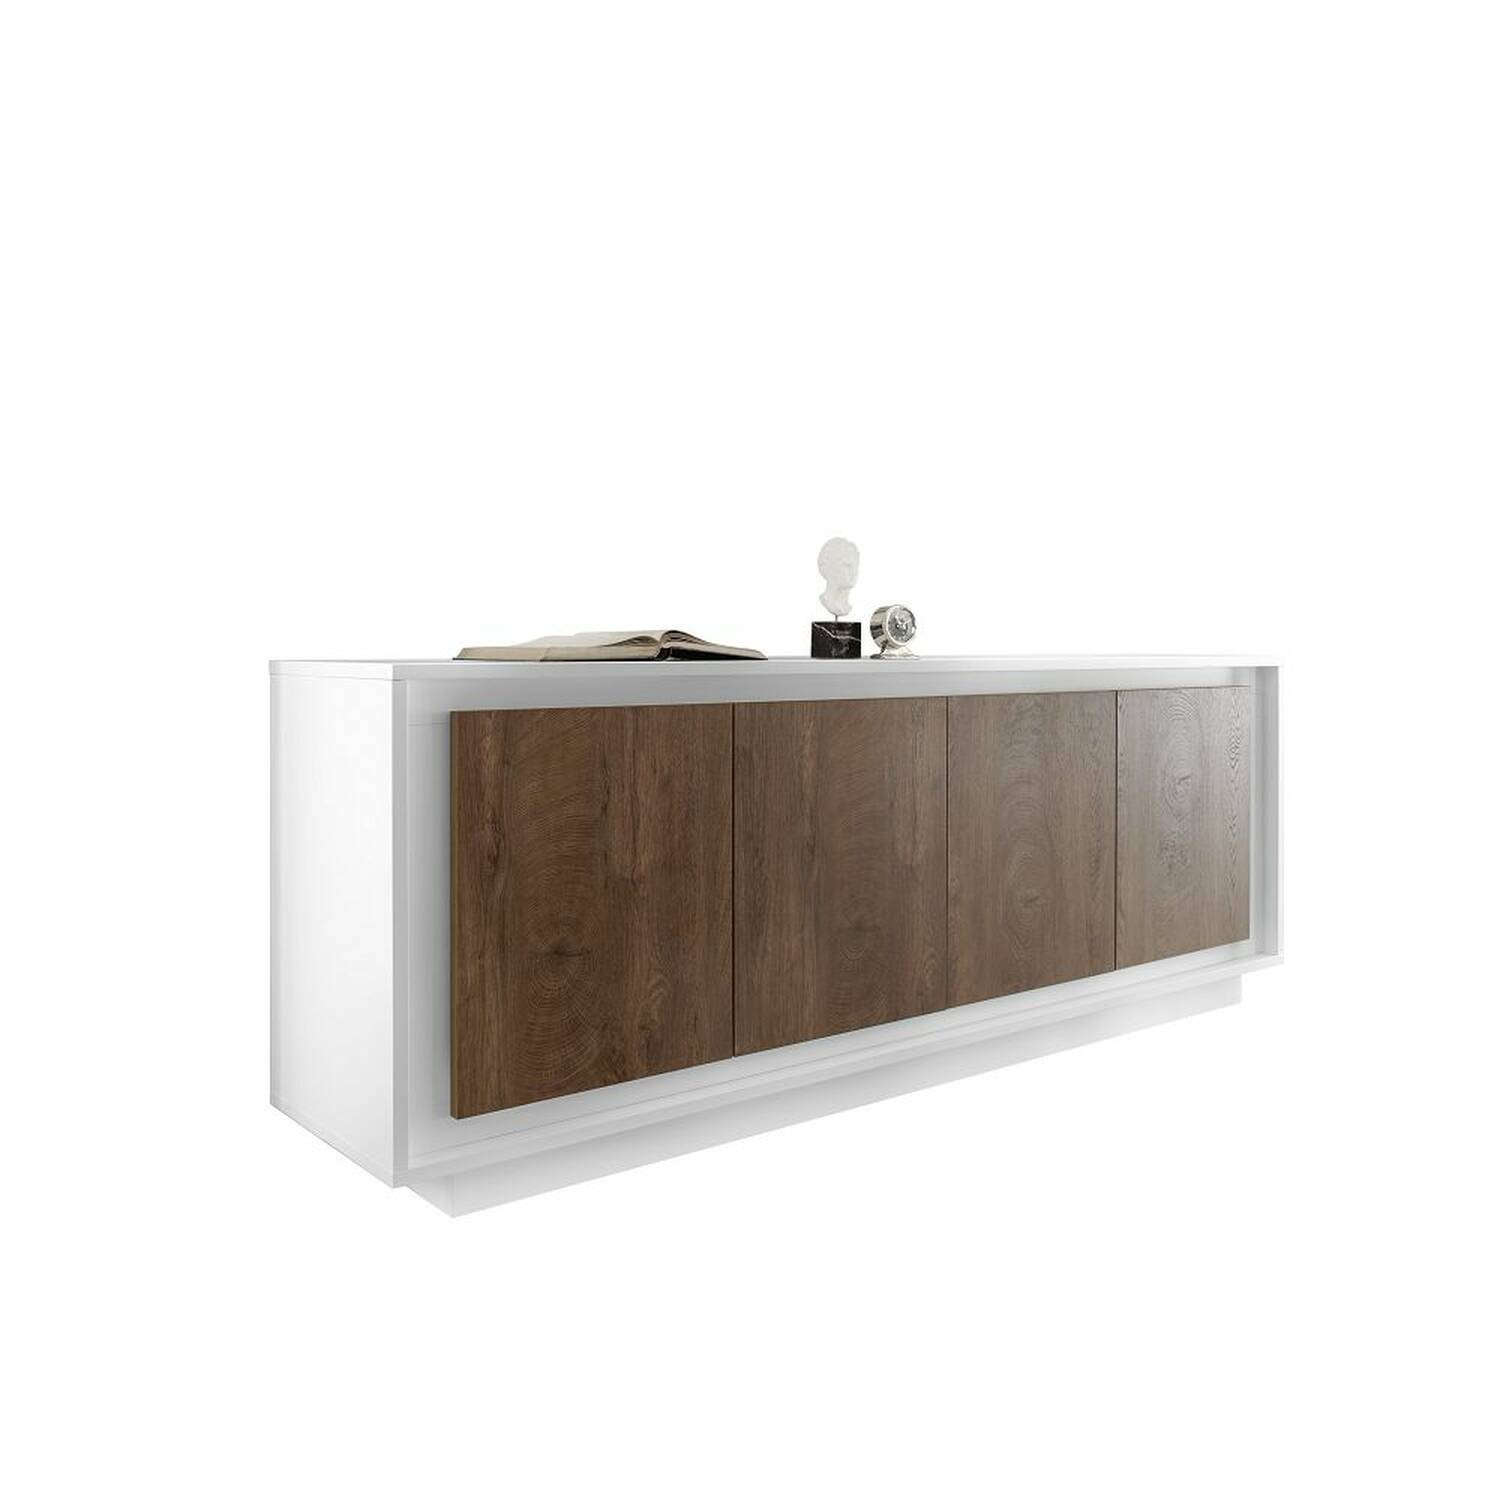 4-türiges Sideboard mit Soft-Close SOLENZO-63 in weiß Lack matt & Eiche Cognac Nb. - B/H/T: 207/80/50cm